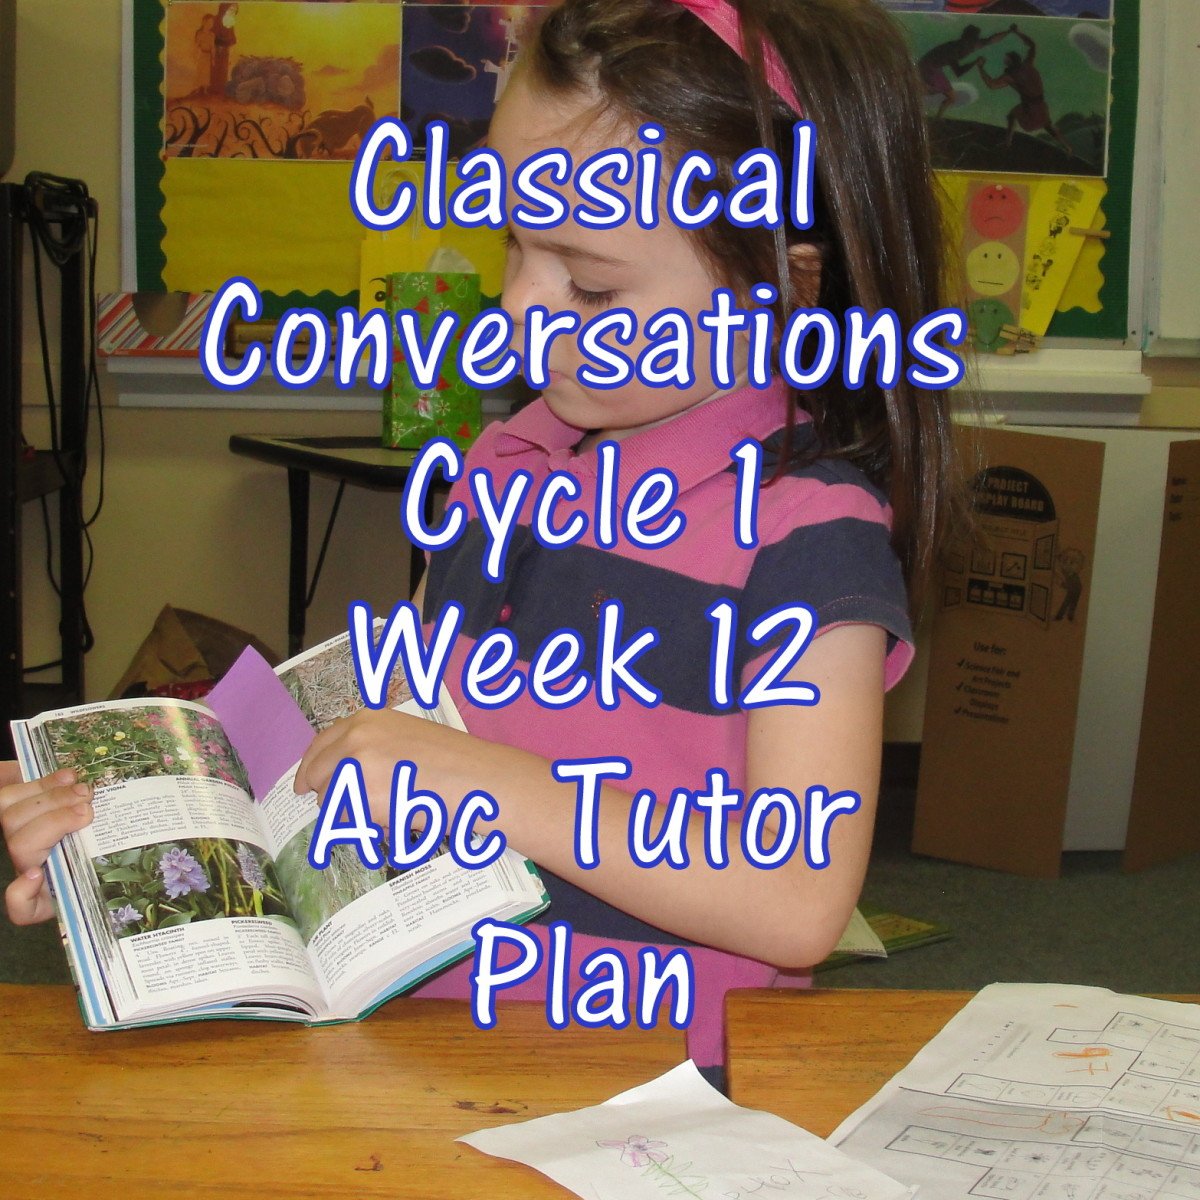 CC Cycle 1 Week 12 Plan for Abecedarian Tutors